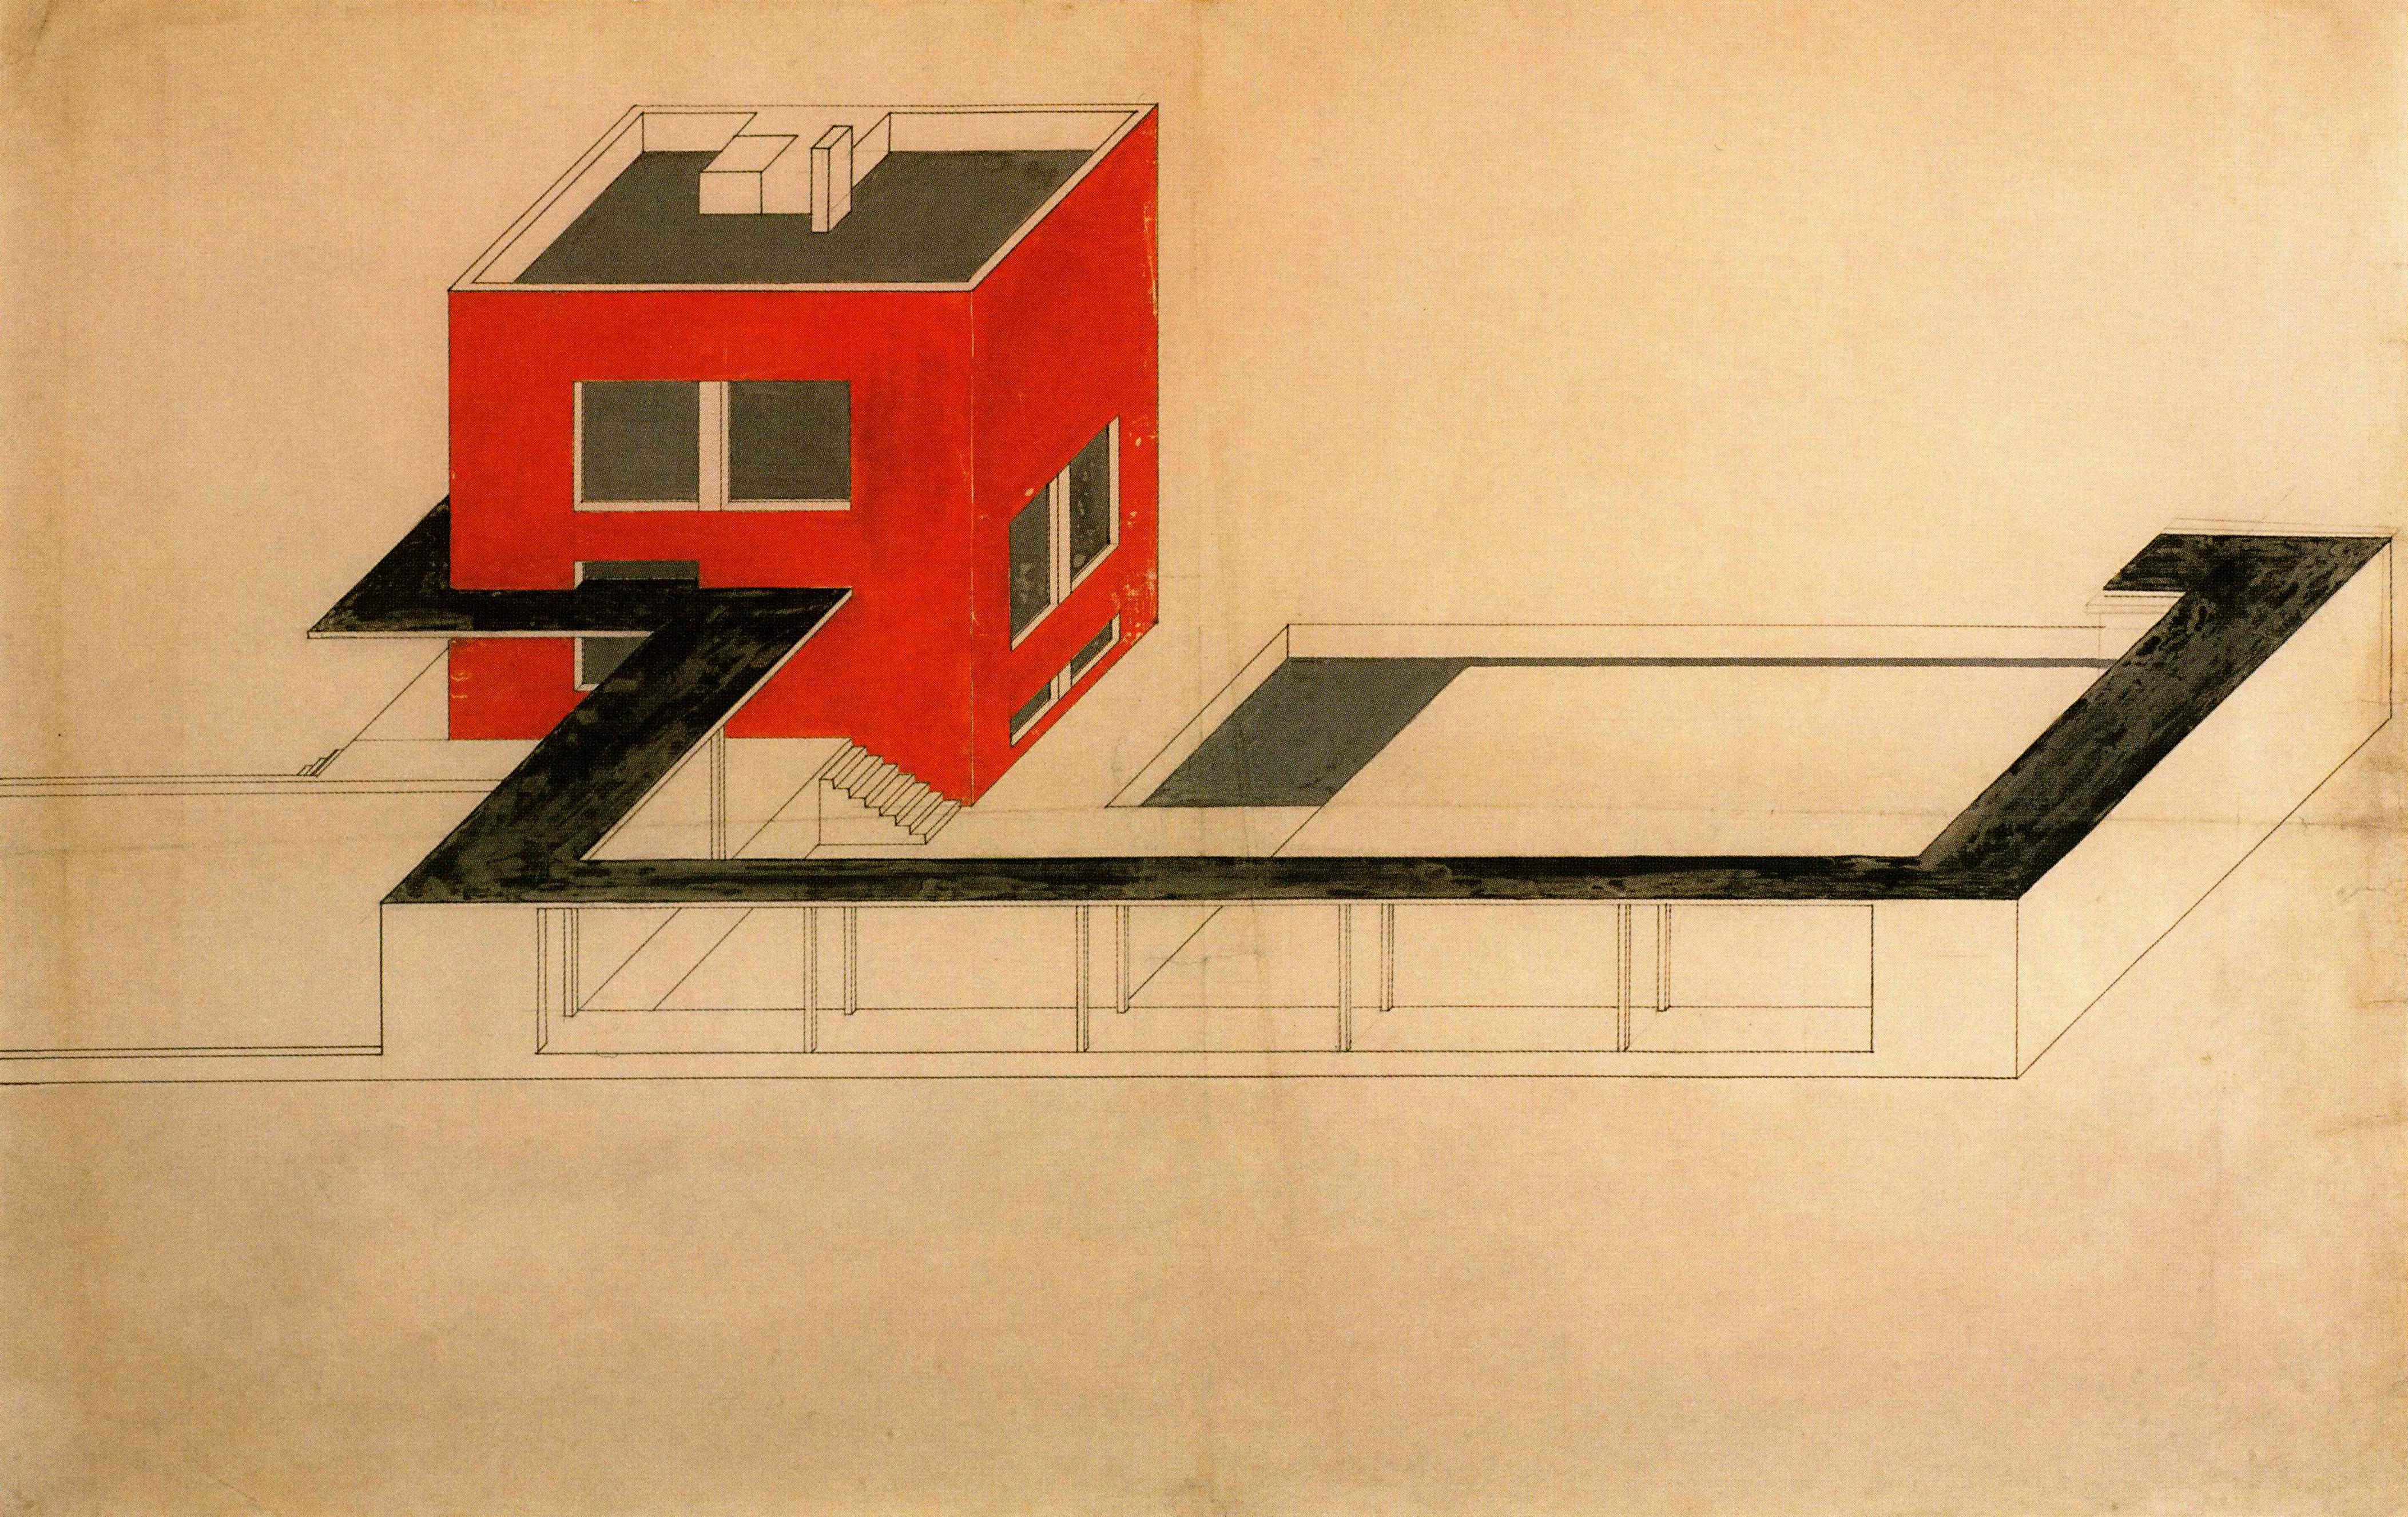 Farkas Molnar Project For A Single Family House Der Rote Wiirfel The Red Cube Presentation Drawing 1923 Ink And Gouache On Board 59 X 915cm